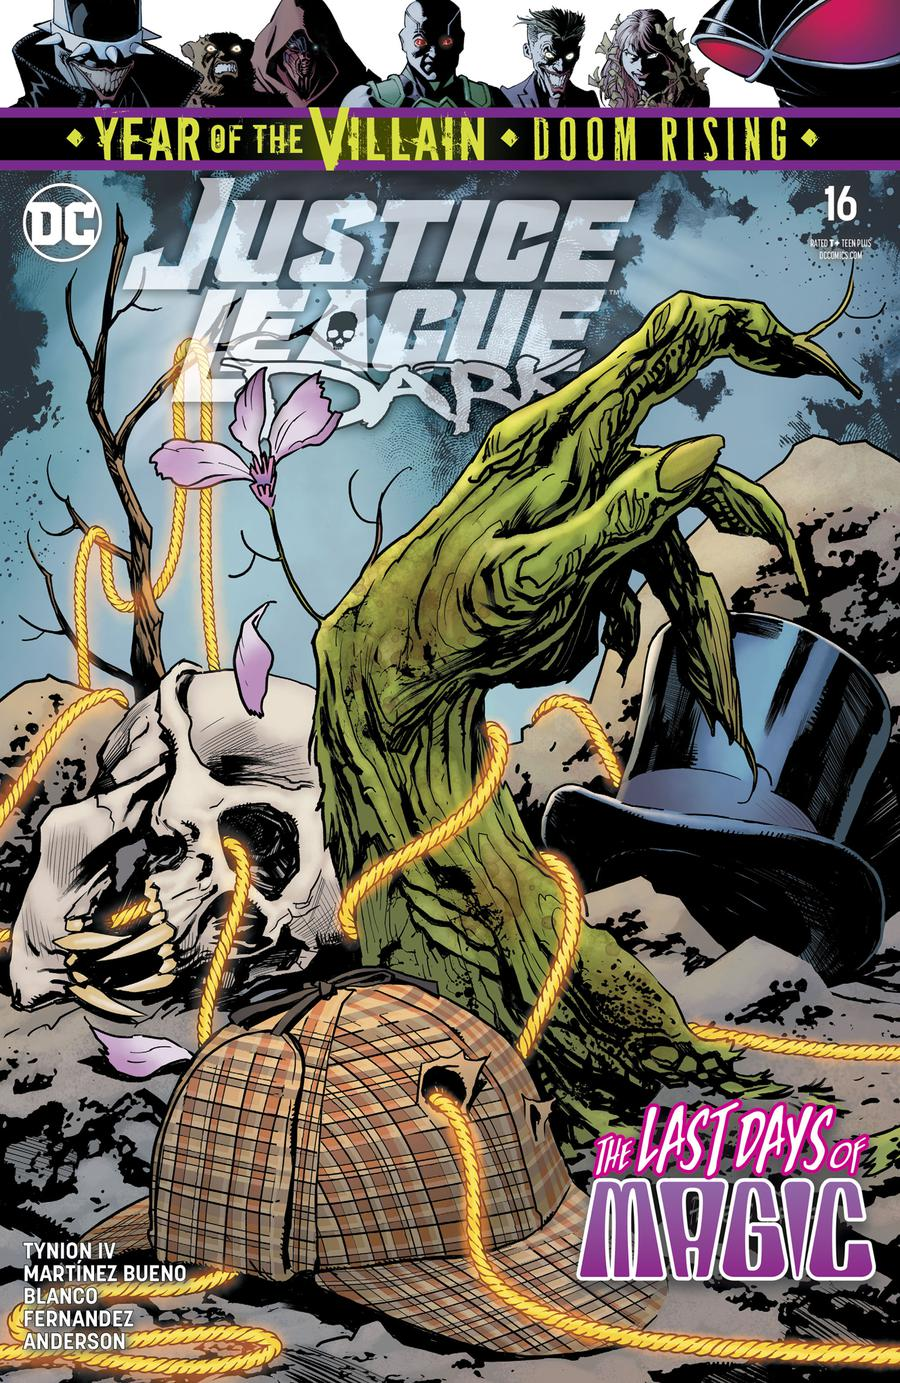 Justice League Dark Vol 2 #16 Cover A Regular Yanick Paquette Cover (Year Of The Villain Doom Rising Tie-In)